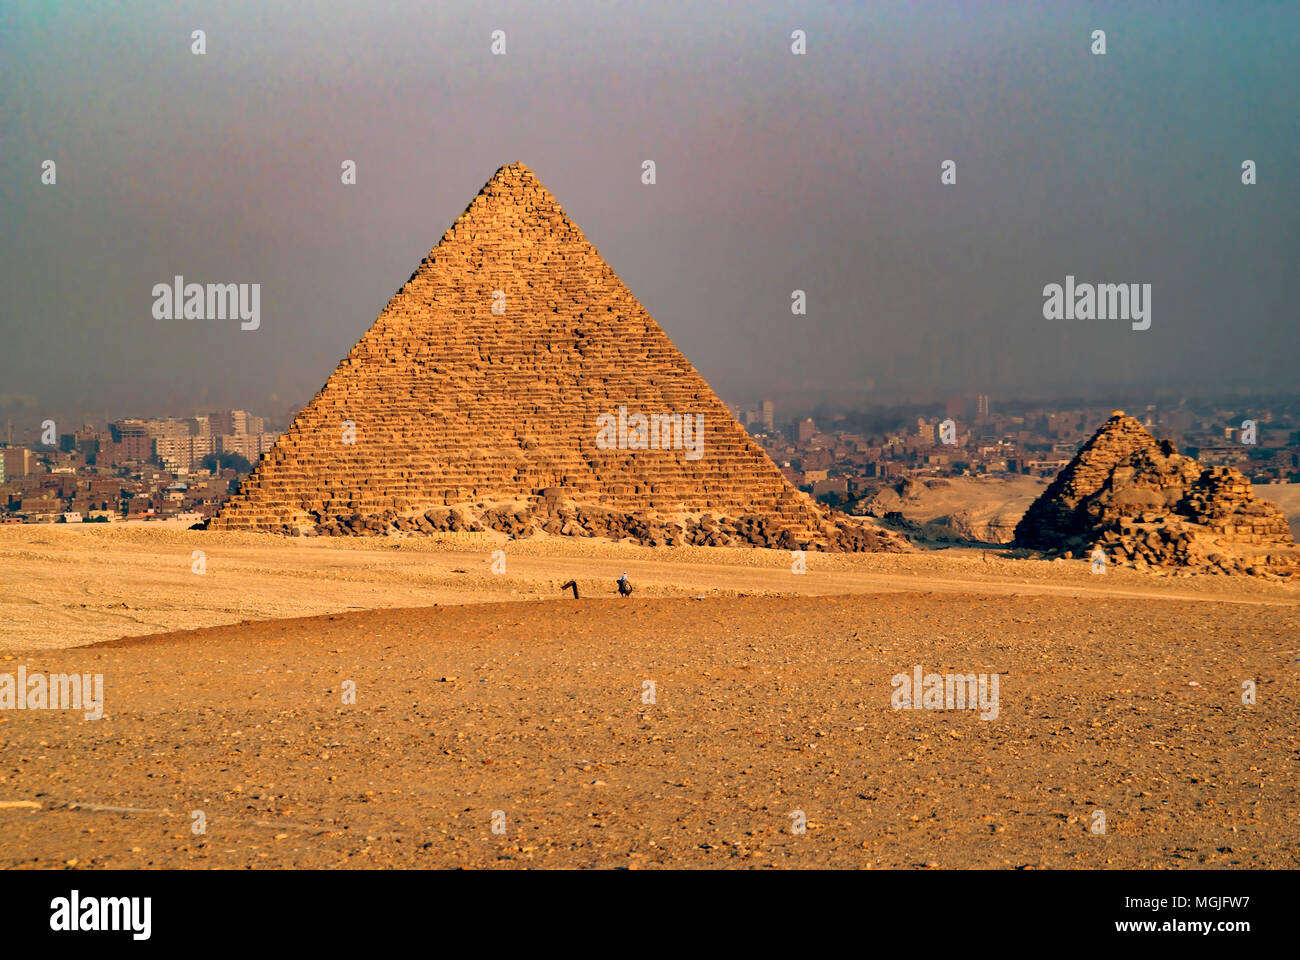 Pyramid of Mycerinus (Menkaure) and the three small Queen's Pyramids. Cairo, Egypt in the background. - Stock Image